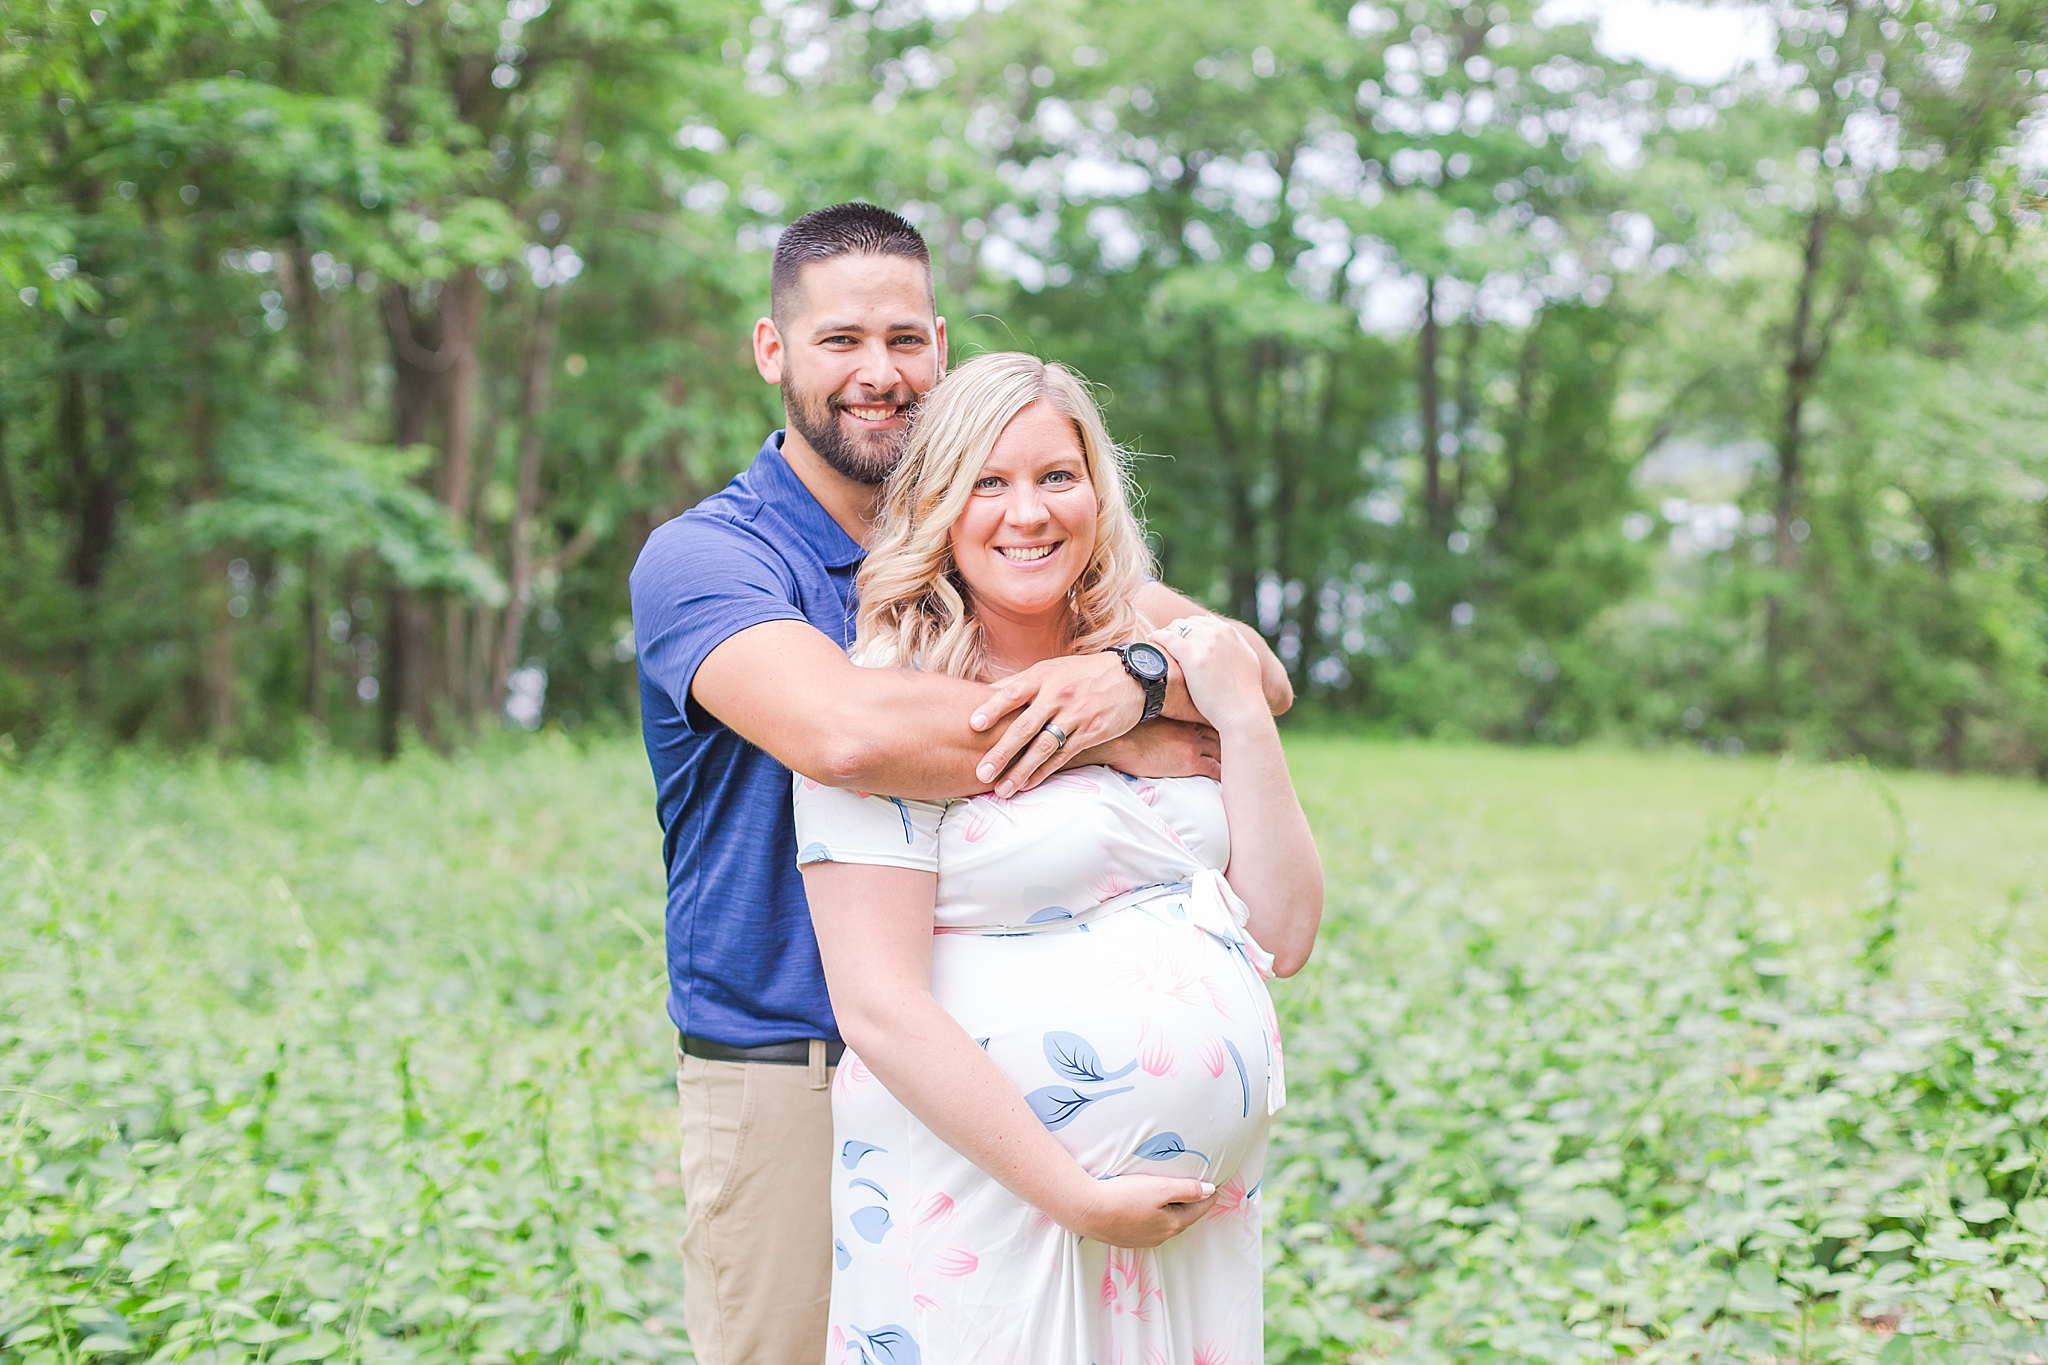 detroit-wedding-photographer-kensington-metro-park-maternity-keli-derek-by-courtney-carolyn-photography_0009.jpg